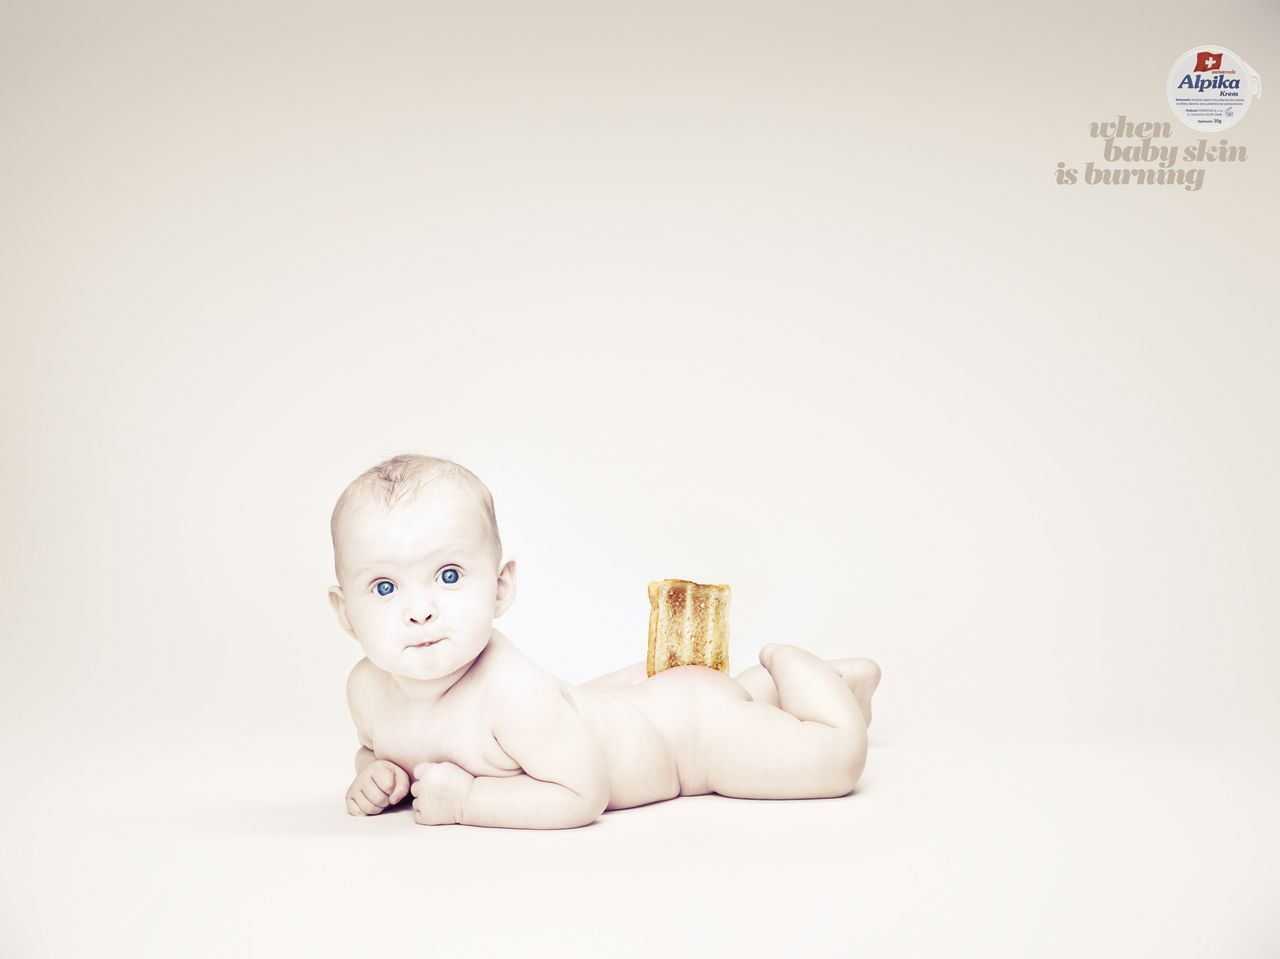 When baby skin is burning- Alpika diaper rash cream ad by McCann Erickson, Poland